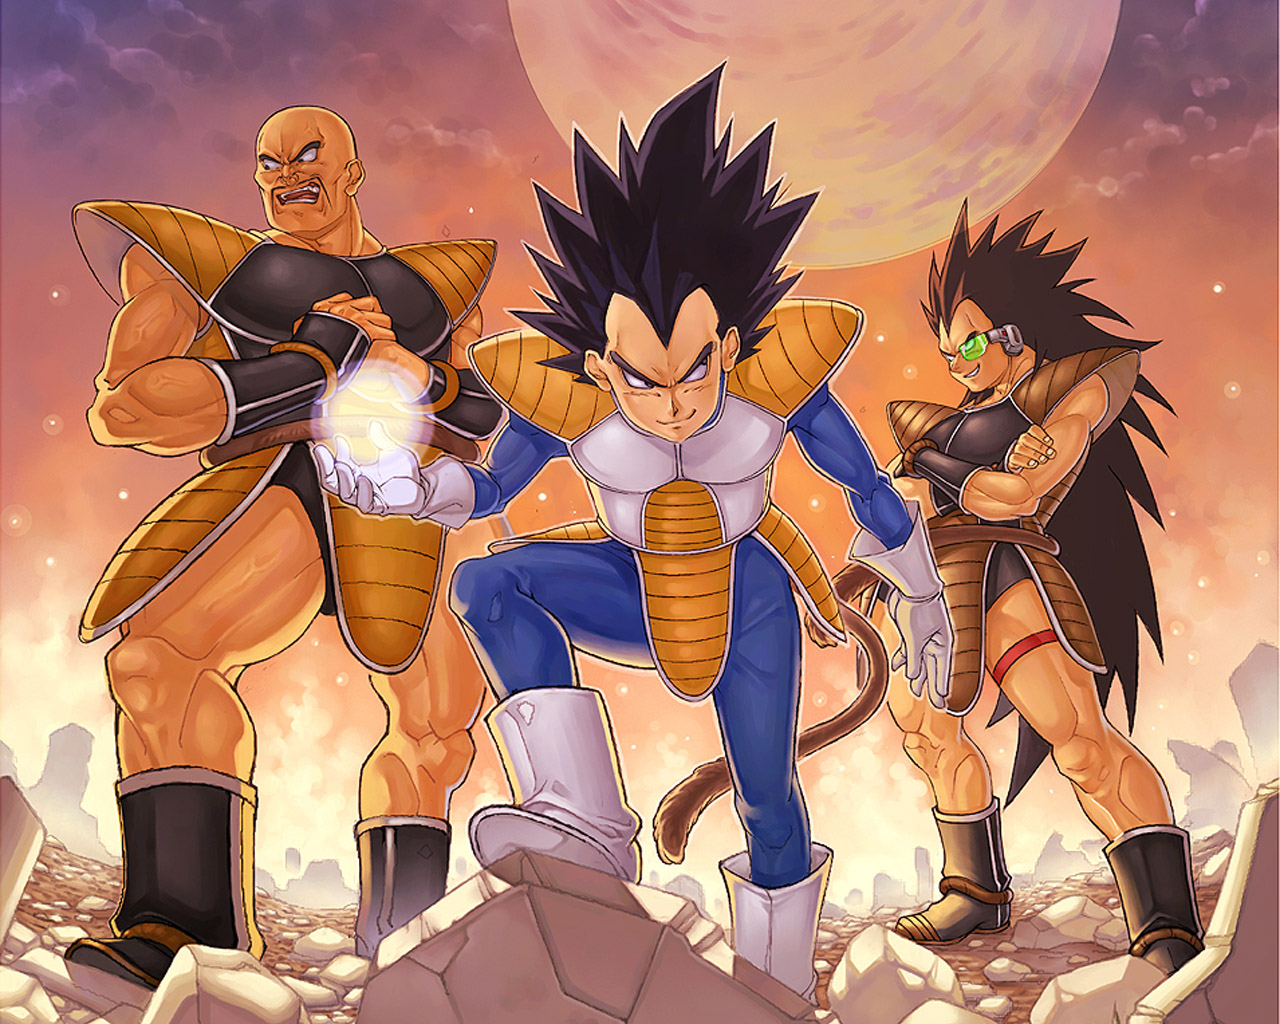 Dragon Ball Z Images Vageeta HD Wallpaper And Background Photos